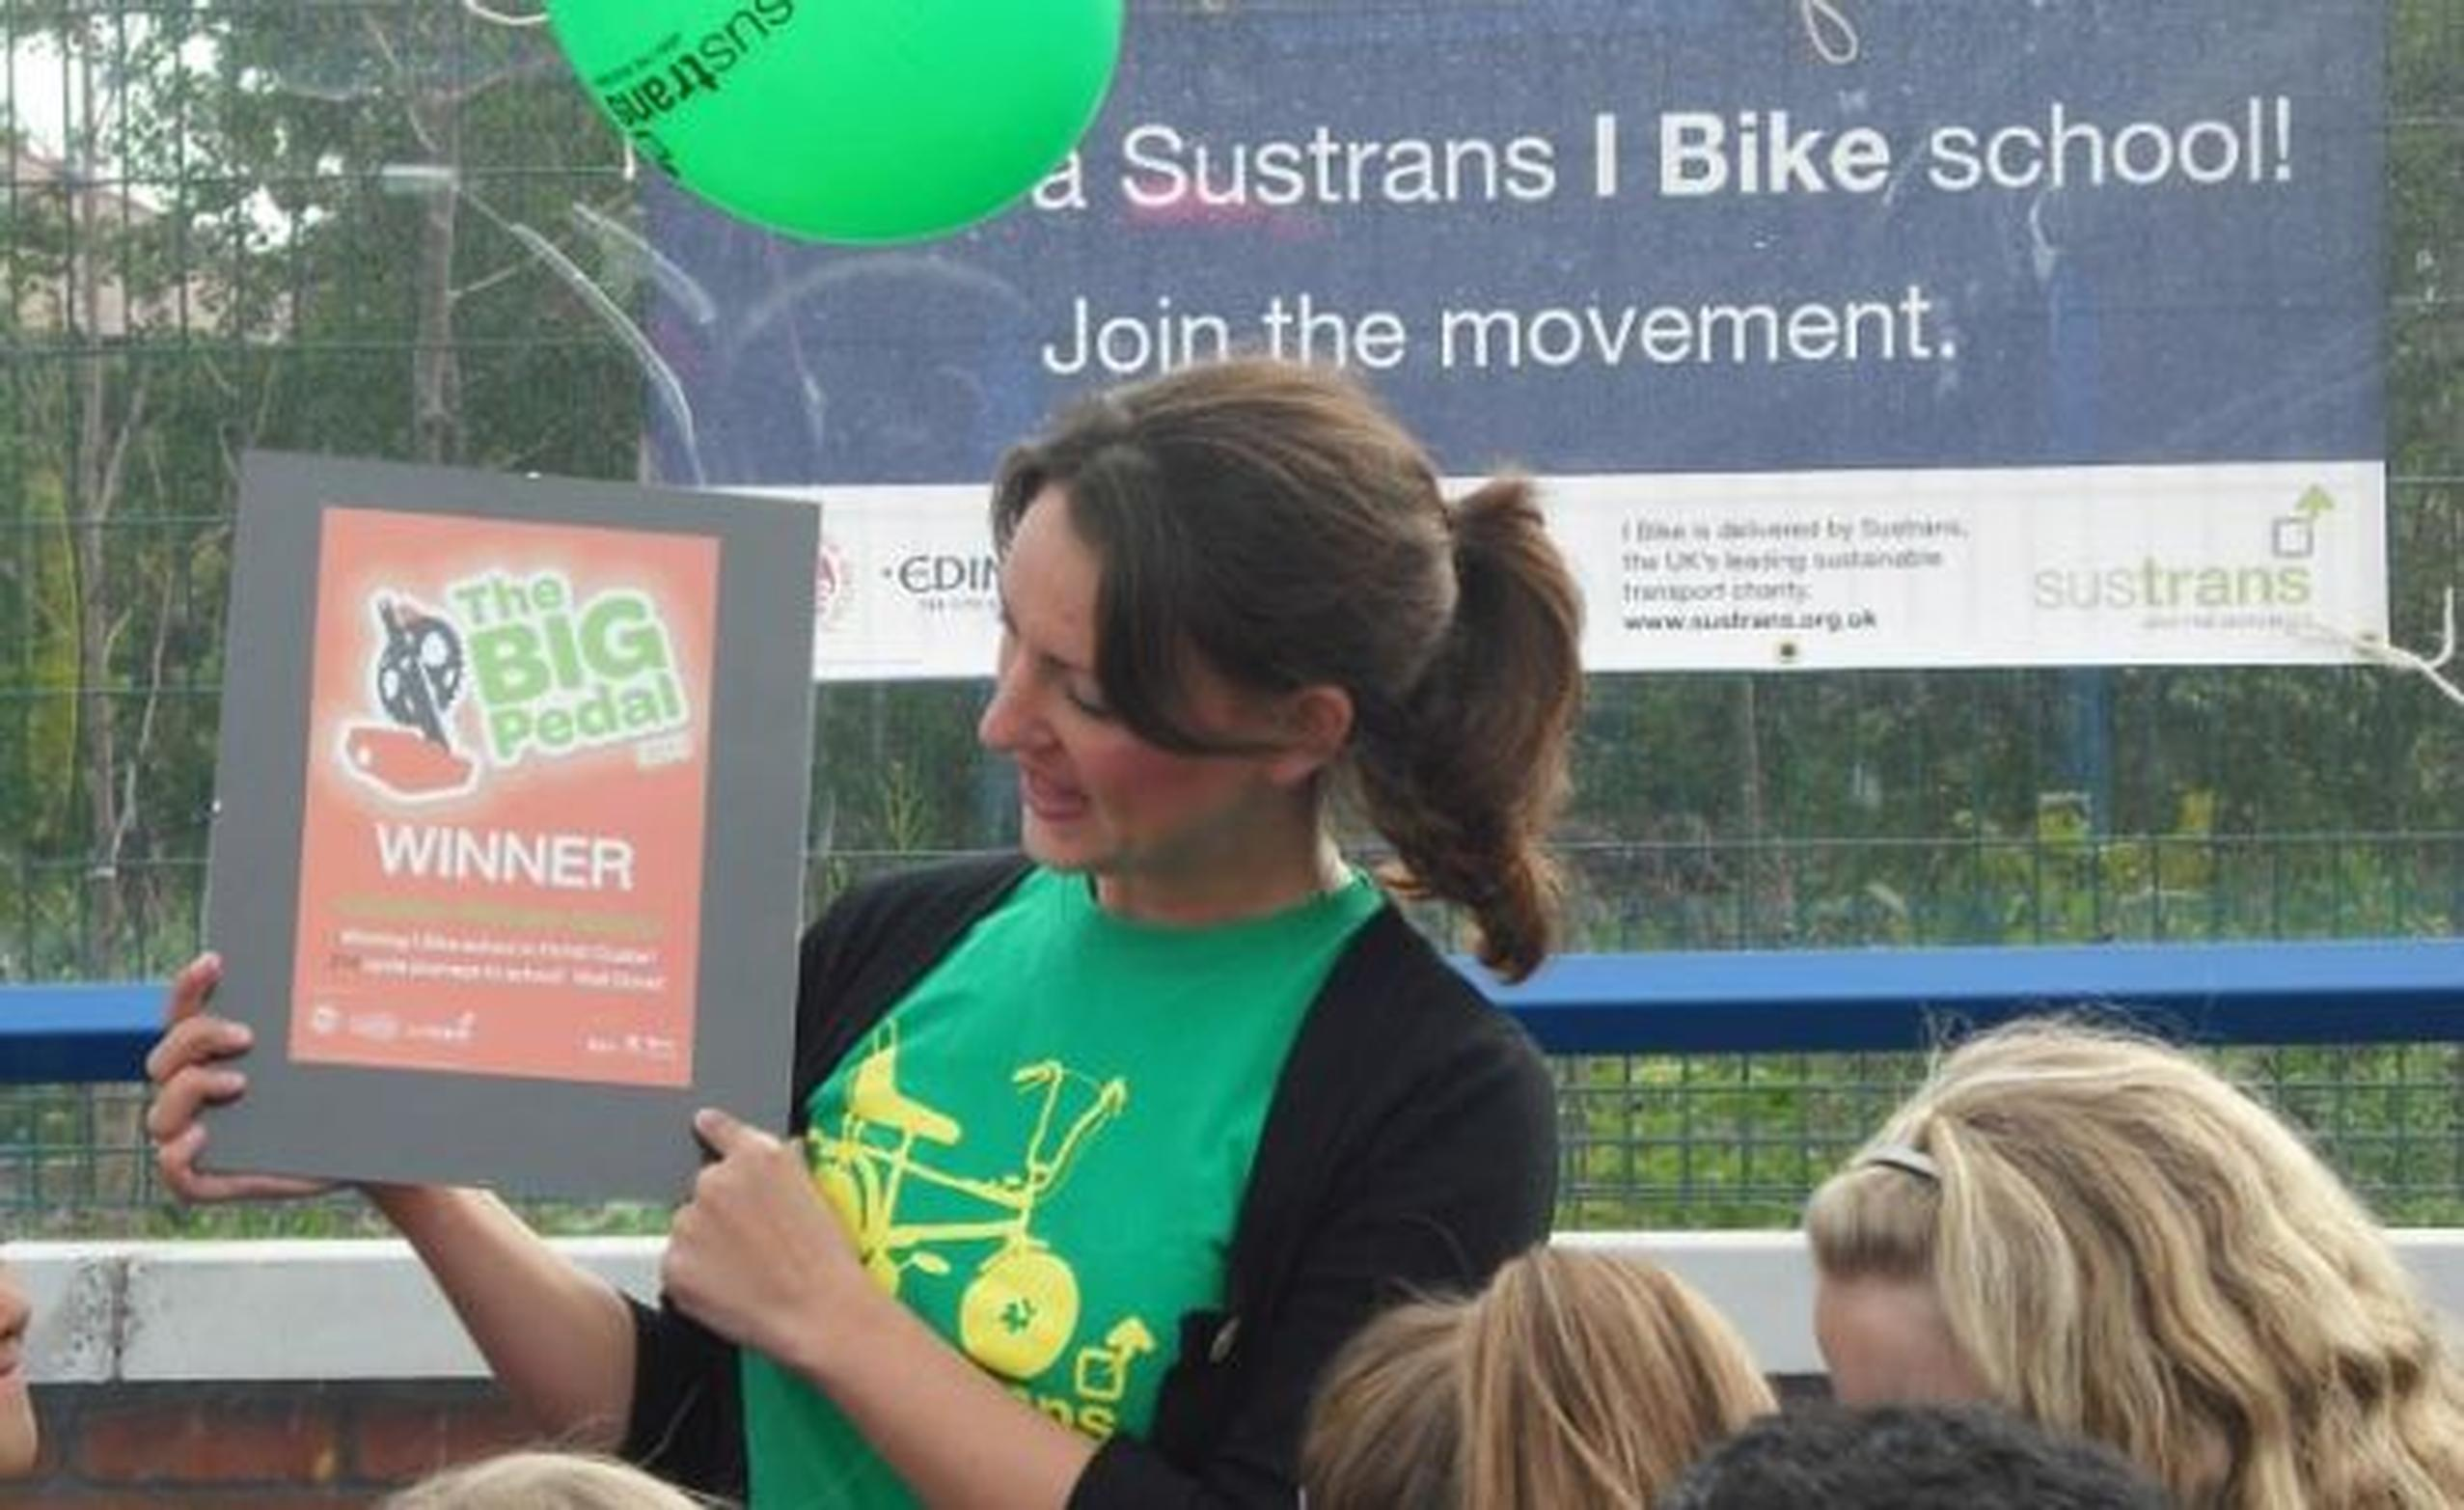 Sustrans Scotland's 'I Bike' project helps young people to cycle to school